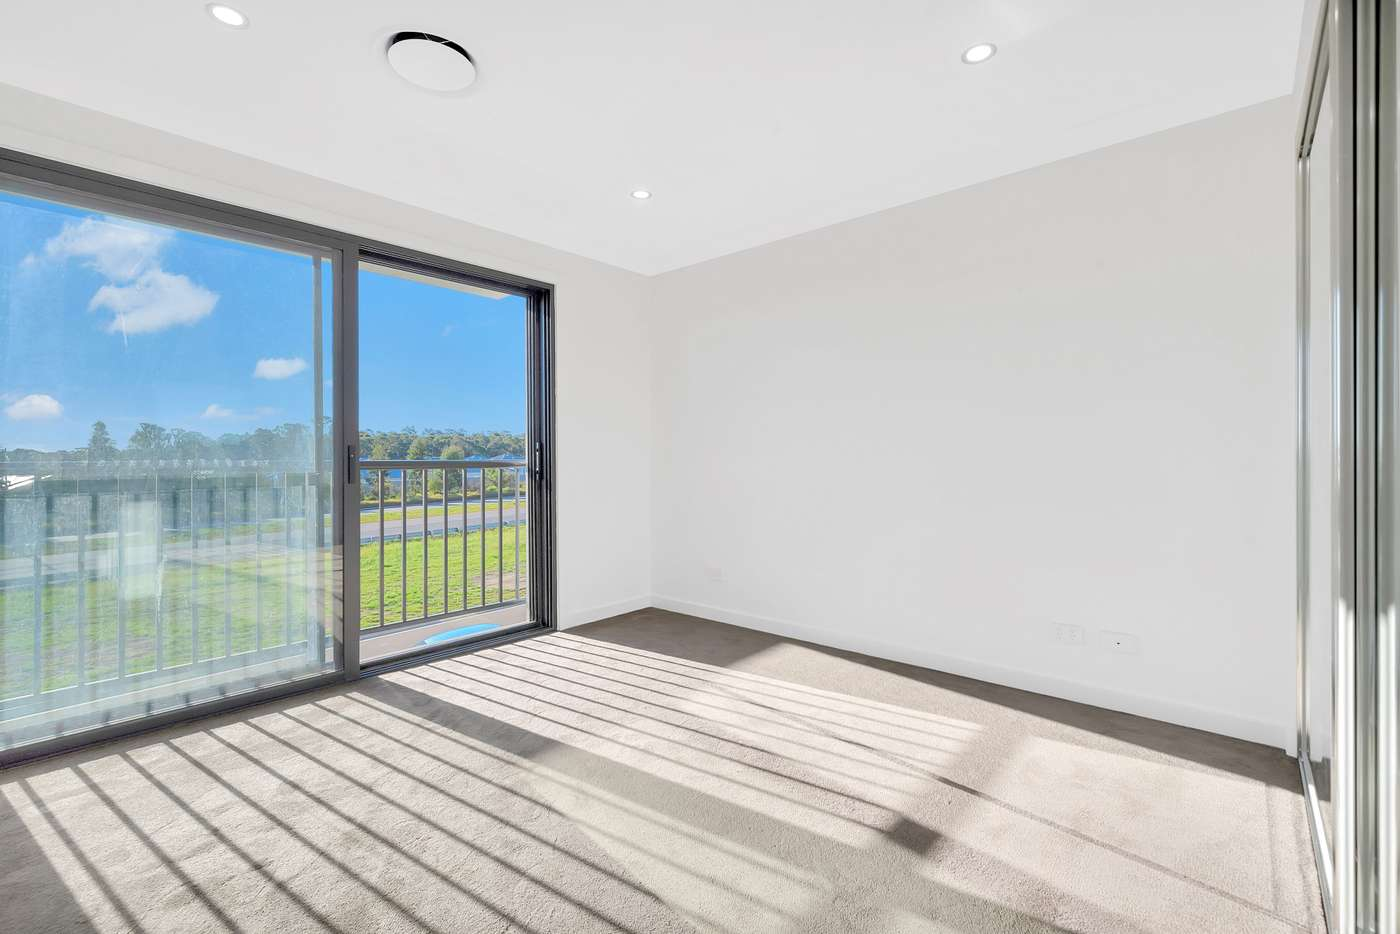 Sixth view of Homely house listing, 8 Rainbows Way, Leppington NSW 2179